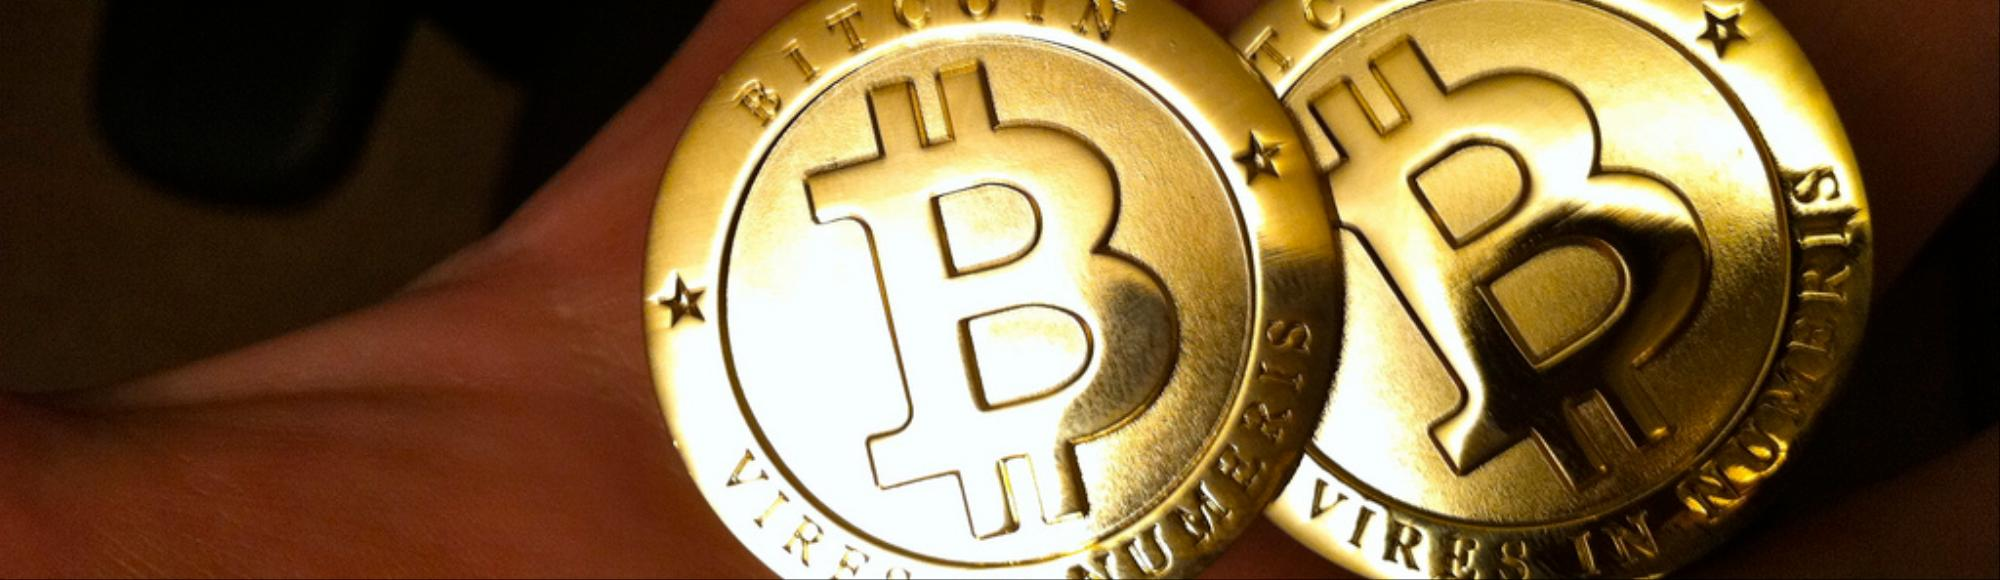 Bitcoin 101: Experiment Will Give MIT Undergrads $100 of Cryptocurrency